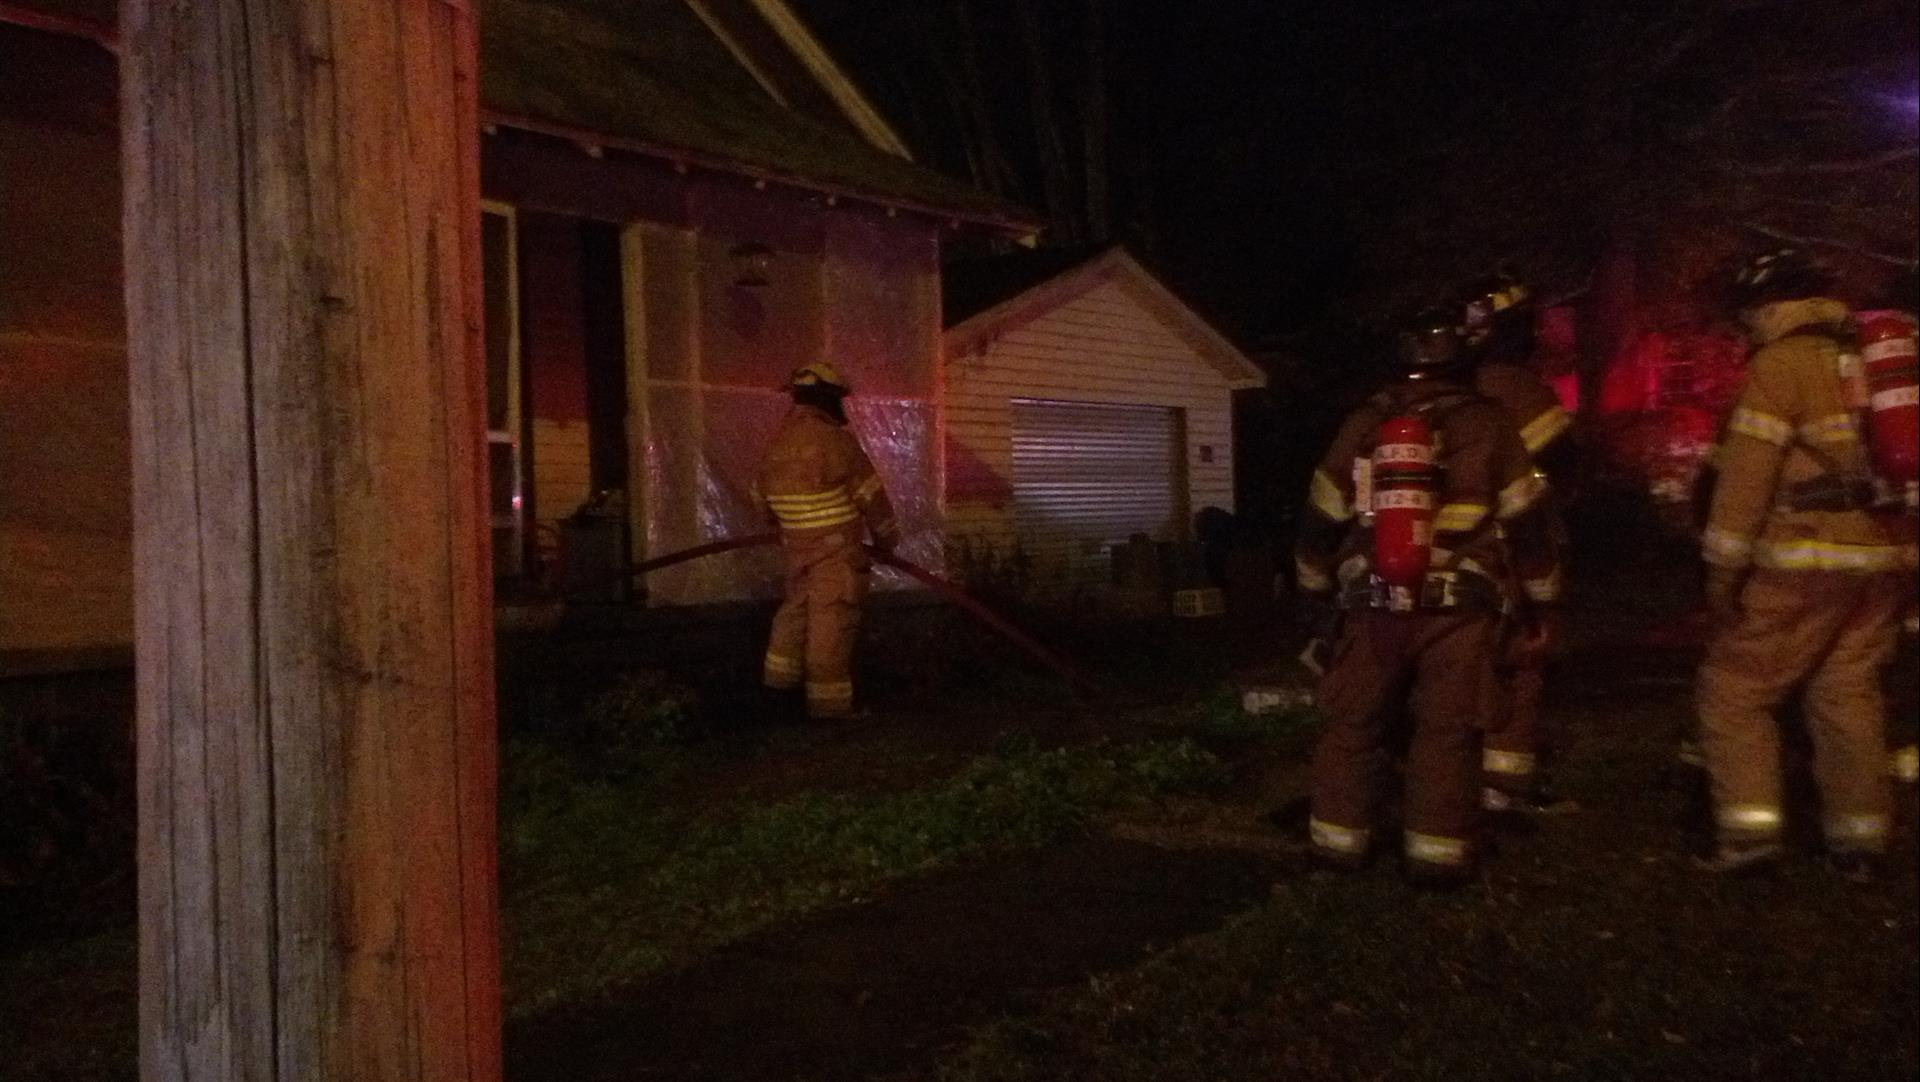 Firefighters use hose at night